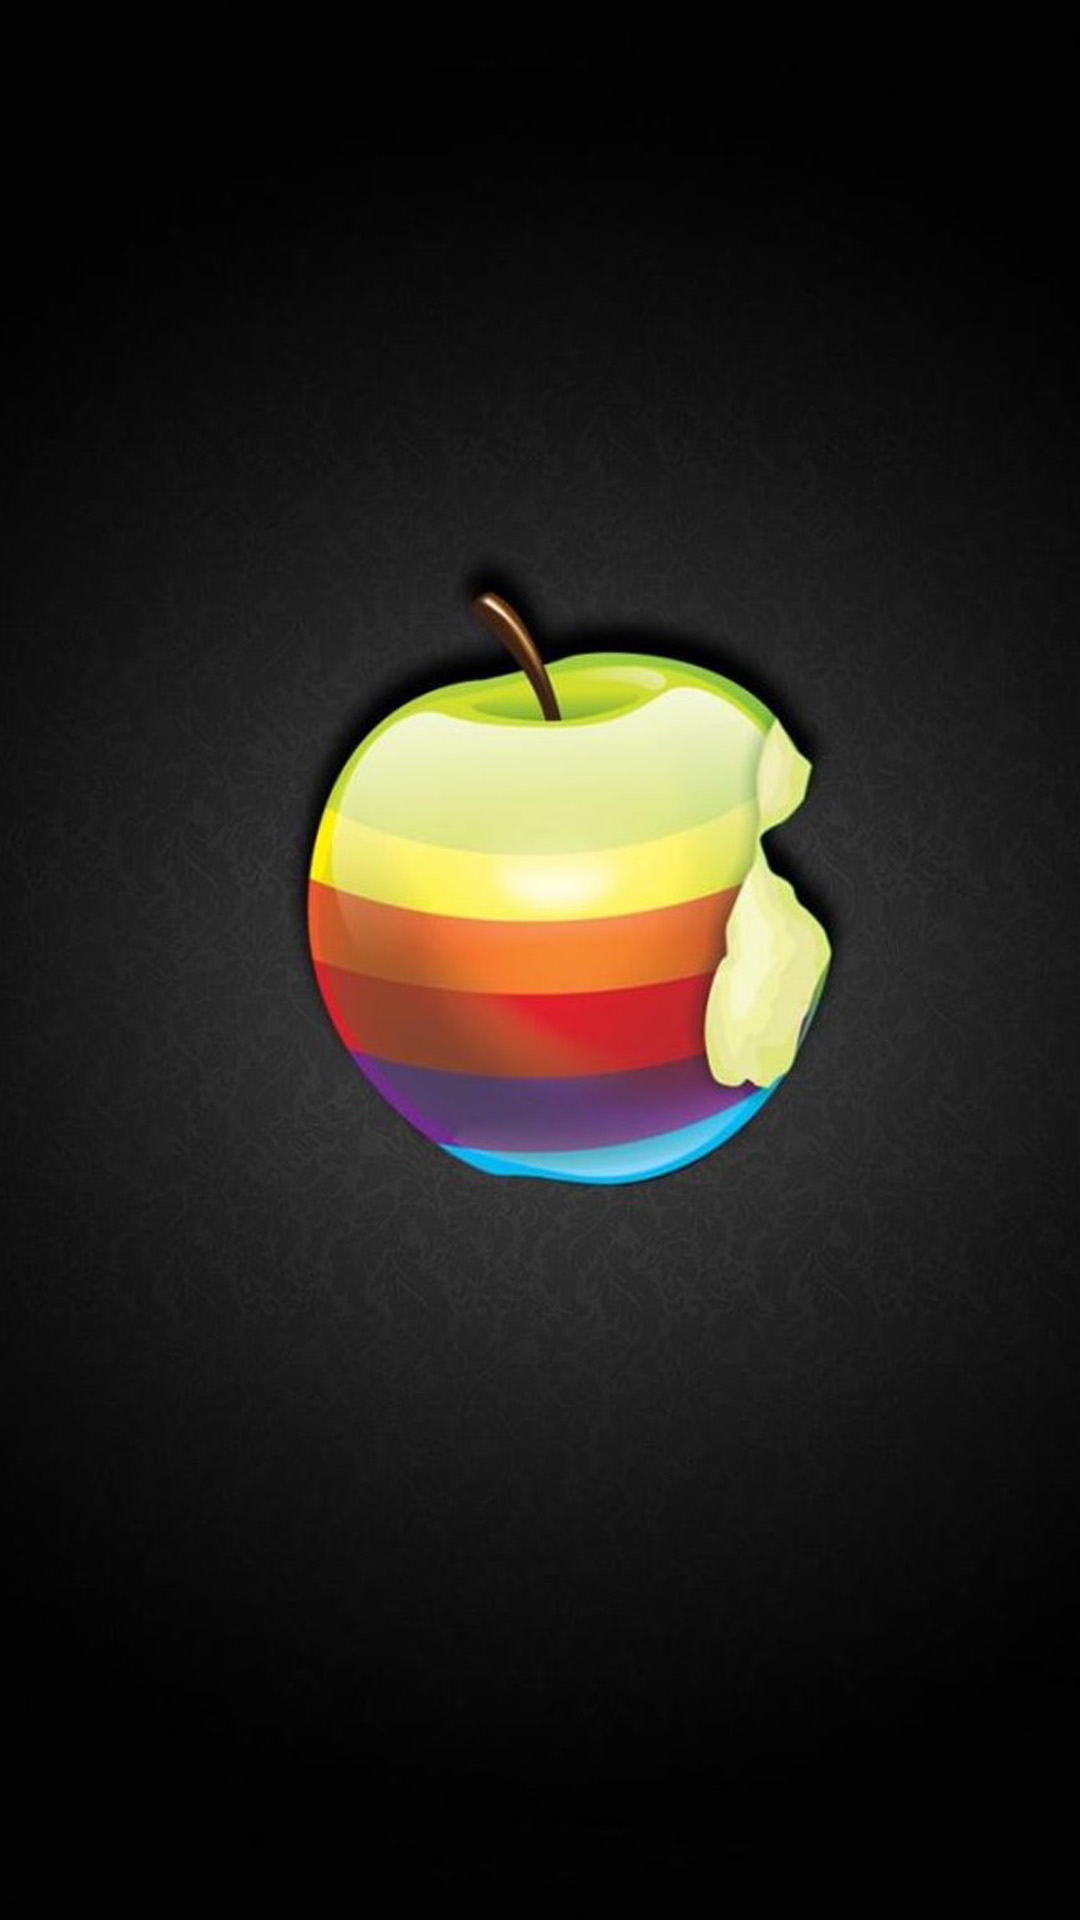 apple iphone wallpapers (40)